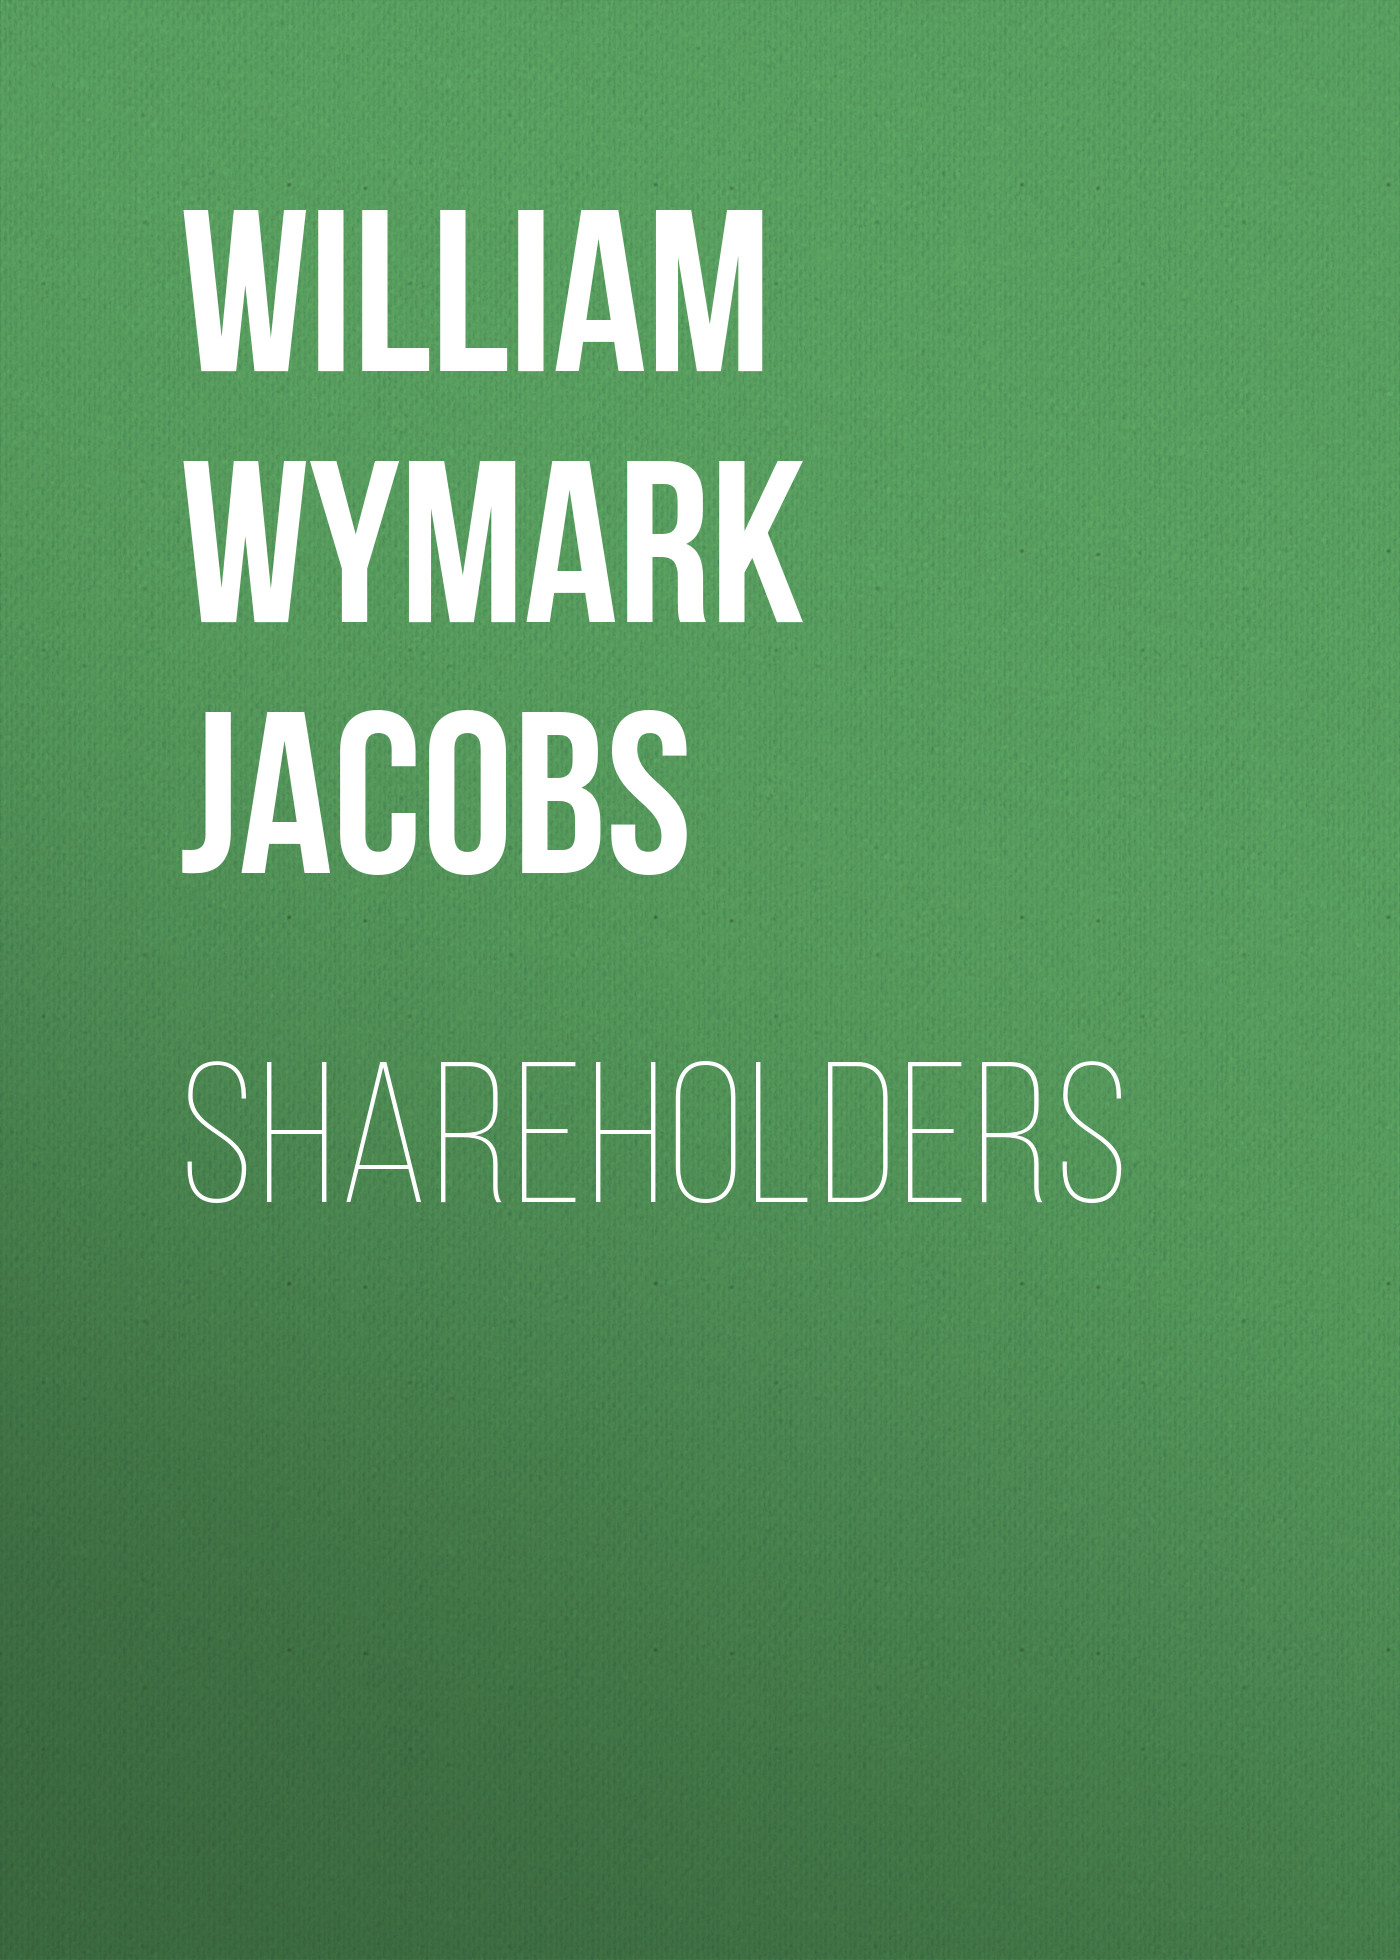 William Wymark Jacobs Shareholders